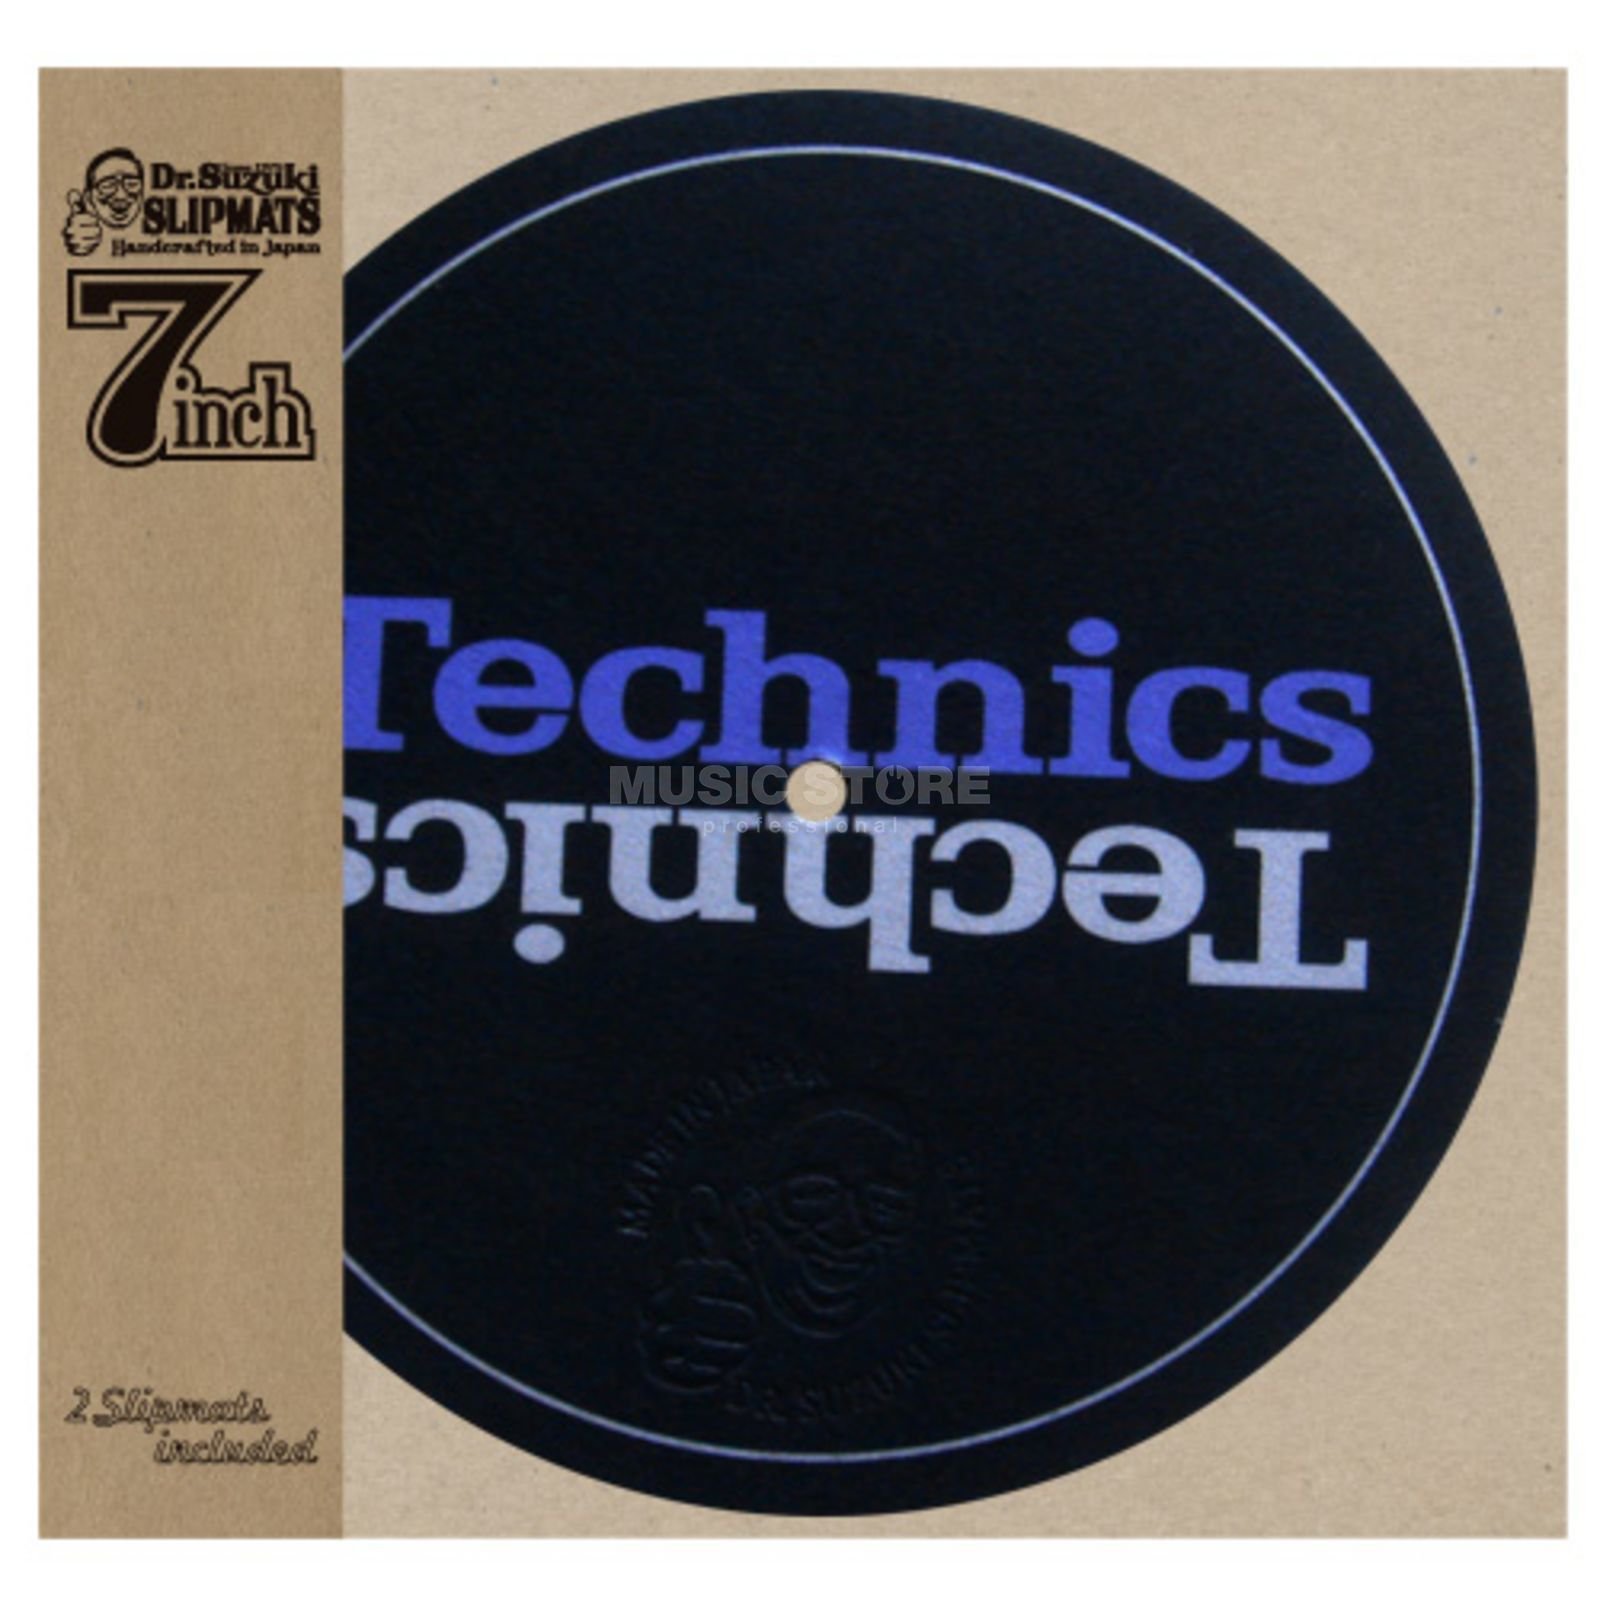 "Tablecloth Dr. Suzuki 7"" Mix Edition Slipmats Technics (paar) Productafbeelding"